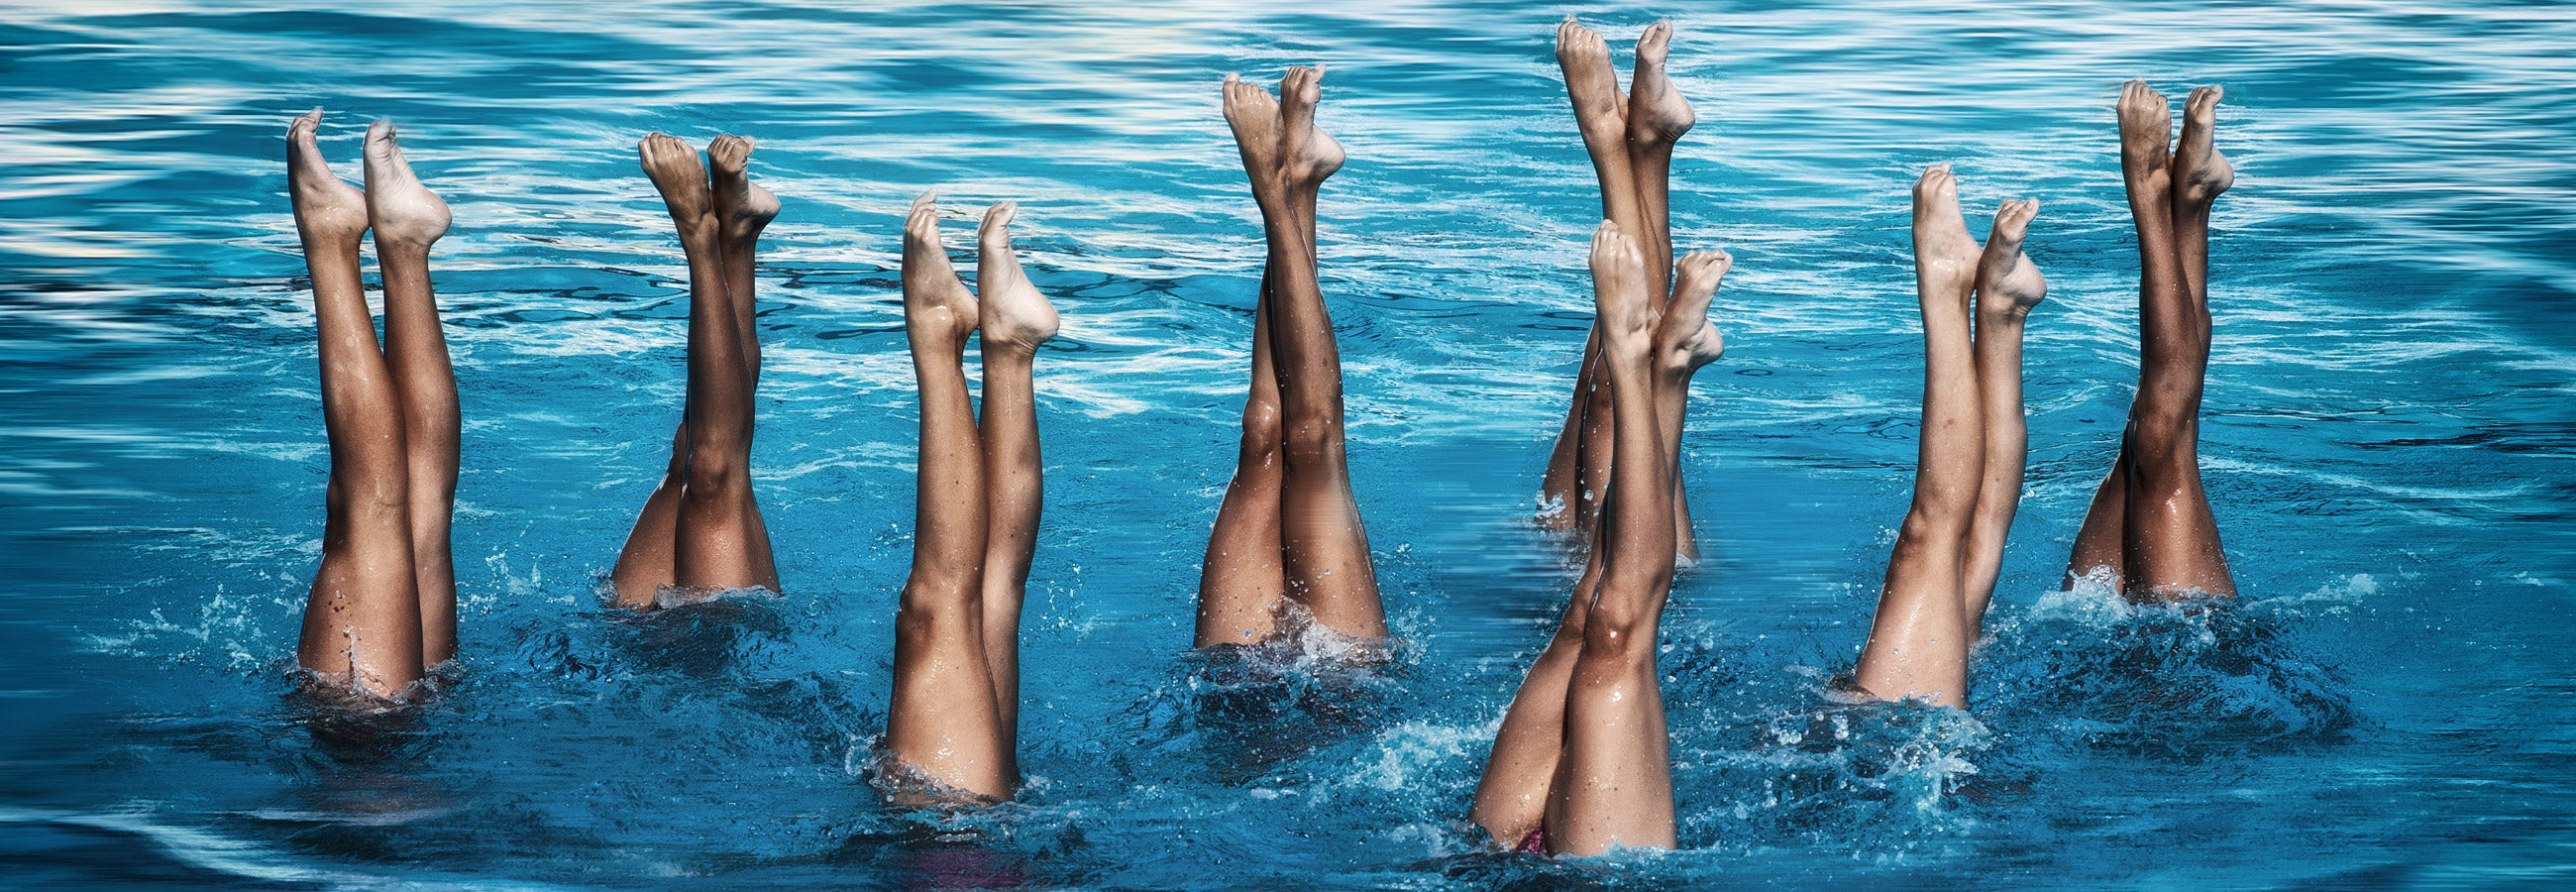 Artistic swimmers in the pool